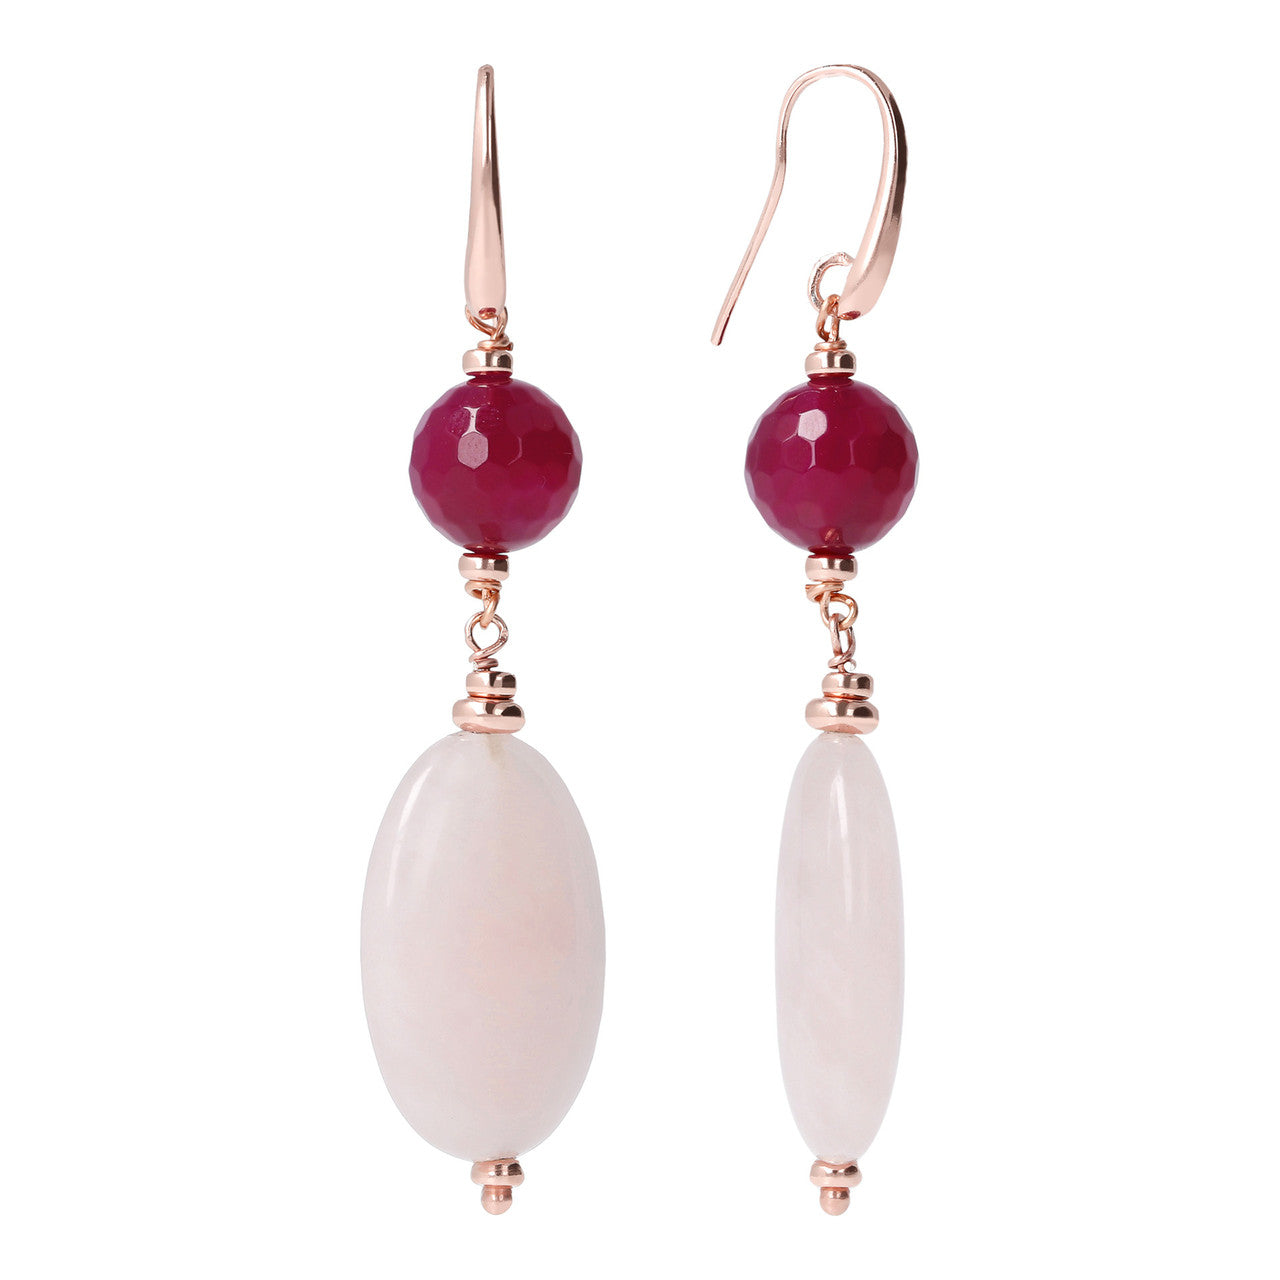 Pink Dangle Earrings with Gemstones front and side